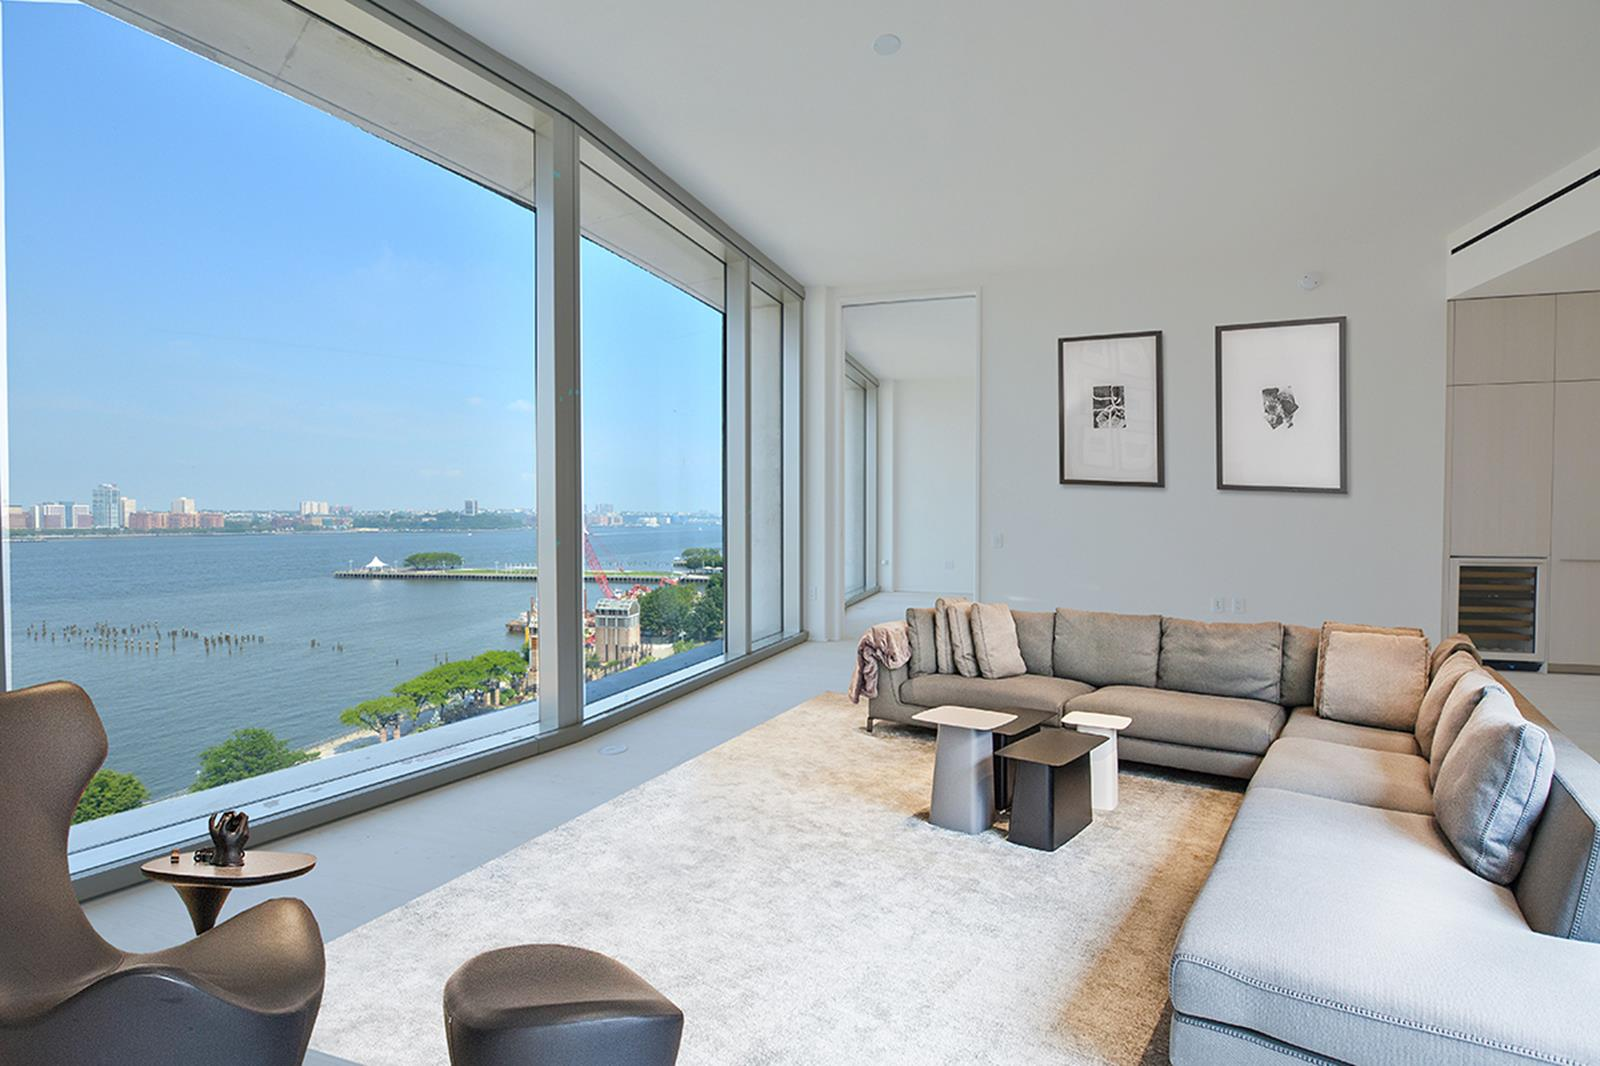 Highest floor 2-bedroom, 2.5 bathroom with spectacular Hudson River views. 1,644 SF / 153 SM with 70 linear feet of glass, 11-foot ceilings, 5 major art walls and unrivaled amenities. Conceptualized by Ian Schrager and designed by Herzog & de Meuron. Be the first to enjoy this truly special home. Apartment features: Semi private landing with only 2 apartments per floor. 12-inch wide-plank Scandinavian Larchwood floors throughout, floor-to-ceiling windows and 11 -foot ceilings. The oversized great room sits at the perfect elevation above the Hudson River and offers unobstructed River views all the way to The Statue of Liberty. The powder room is paneled in Scandinavian Larchwood and finished with a custom vanity. Bulthaup kitchen with Larchwood cabinets, Sivec marble slab countertops, backsplash and breakfast bar.  All appliances are fully integrated and include a Sub-zero refrigerator, Gaggenau cooktop, Wolf steam oven, Miele dishwasher, Sub-Zero wine refrigerator and a Miele coffee station. The master bedroom suite with Hudson River views has a dressing area and an oversized walk-in closet. The windowed en-suite master bath is fully clad in Sivec marble and offers a wet room with an oversized shower and Kaldewei soaking tub, double vanity and radiant heated floors. The large second bedroom is sun flooded and offers open Eastern views over the West Village. The en-suite 2nd bathroom has hand selected travertine stone walls, a large stall shower and a custom vanity with an integrated corian sink. California closets throughout the apartment. Motorized white solar shades in every room plus blackouts in both bedrooms. All lighting is on a dimming system plus multiple HVAC system zones. Vented washer and dryer. Triple pane windows with UVB/UVA protected glass. No pets. Separate storage room included. Building Features: A private cobblestone driveway, lush landscaped park by Madison Cox, professional spa with 70-foot pool, whirlpool, fitness center, yoga/pilates studio, steam room, sauna, massage room, club house with catering kitchen and a children's play room. 160 Leroy is situated on a cobblestone street in the heart of the West Village and is conveniently located across from The Hudson River Park and bike paths, steps to The Highline Park, Meatpacking District, home of the Whitney Museum, fabled Bleecker Street, and some of the city's best shopping and restaurants.NET EFFECTIVE RENT ADVERTISED. The advertised rent represents the NER on a 12 month lease with 1 month free.